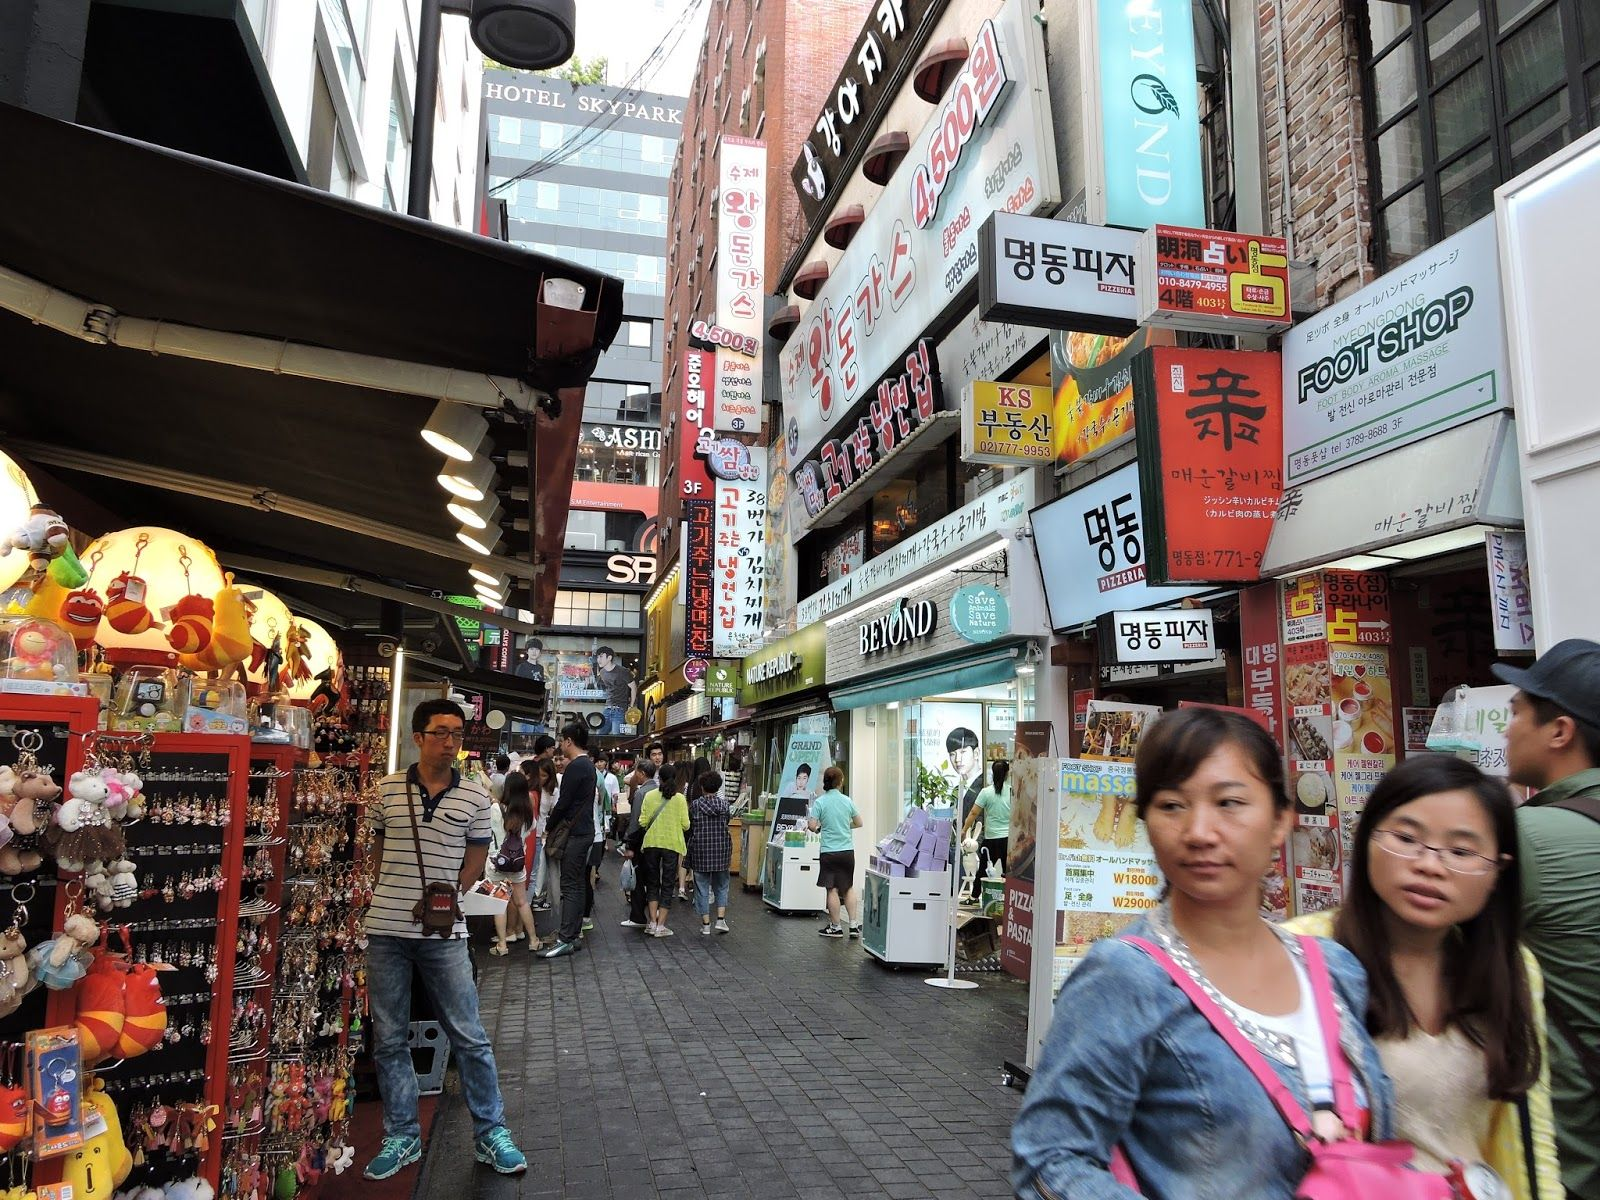 This is a fun installment to my website that I thought would be helpful for those of you visiting Korea! When I was initially planning my t...